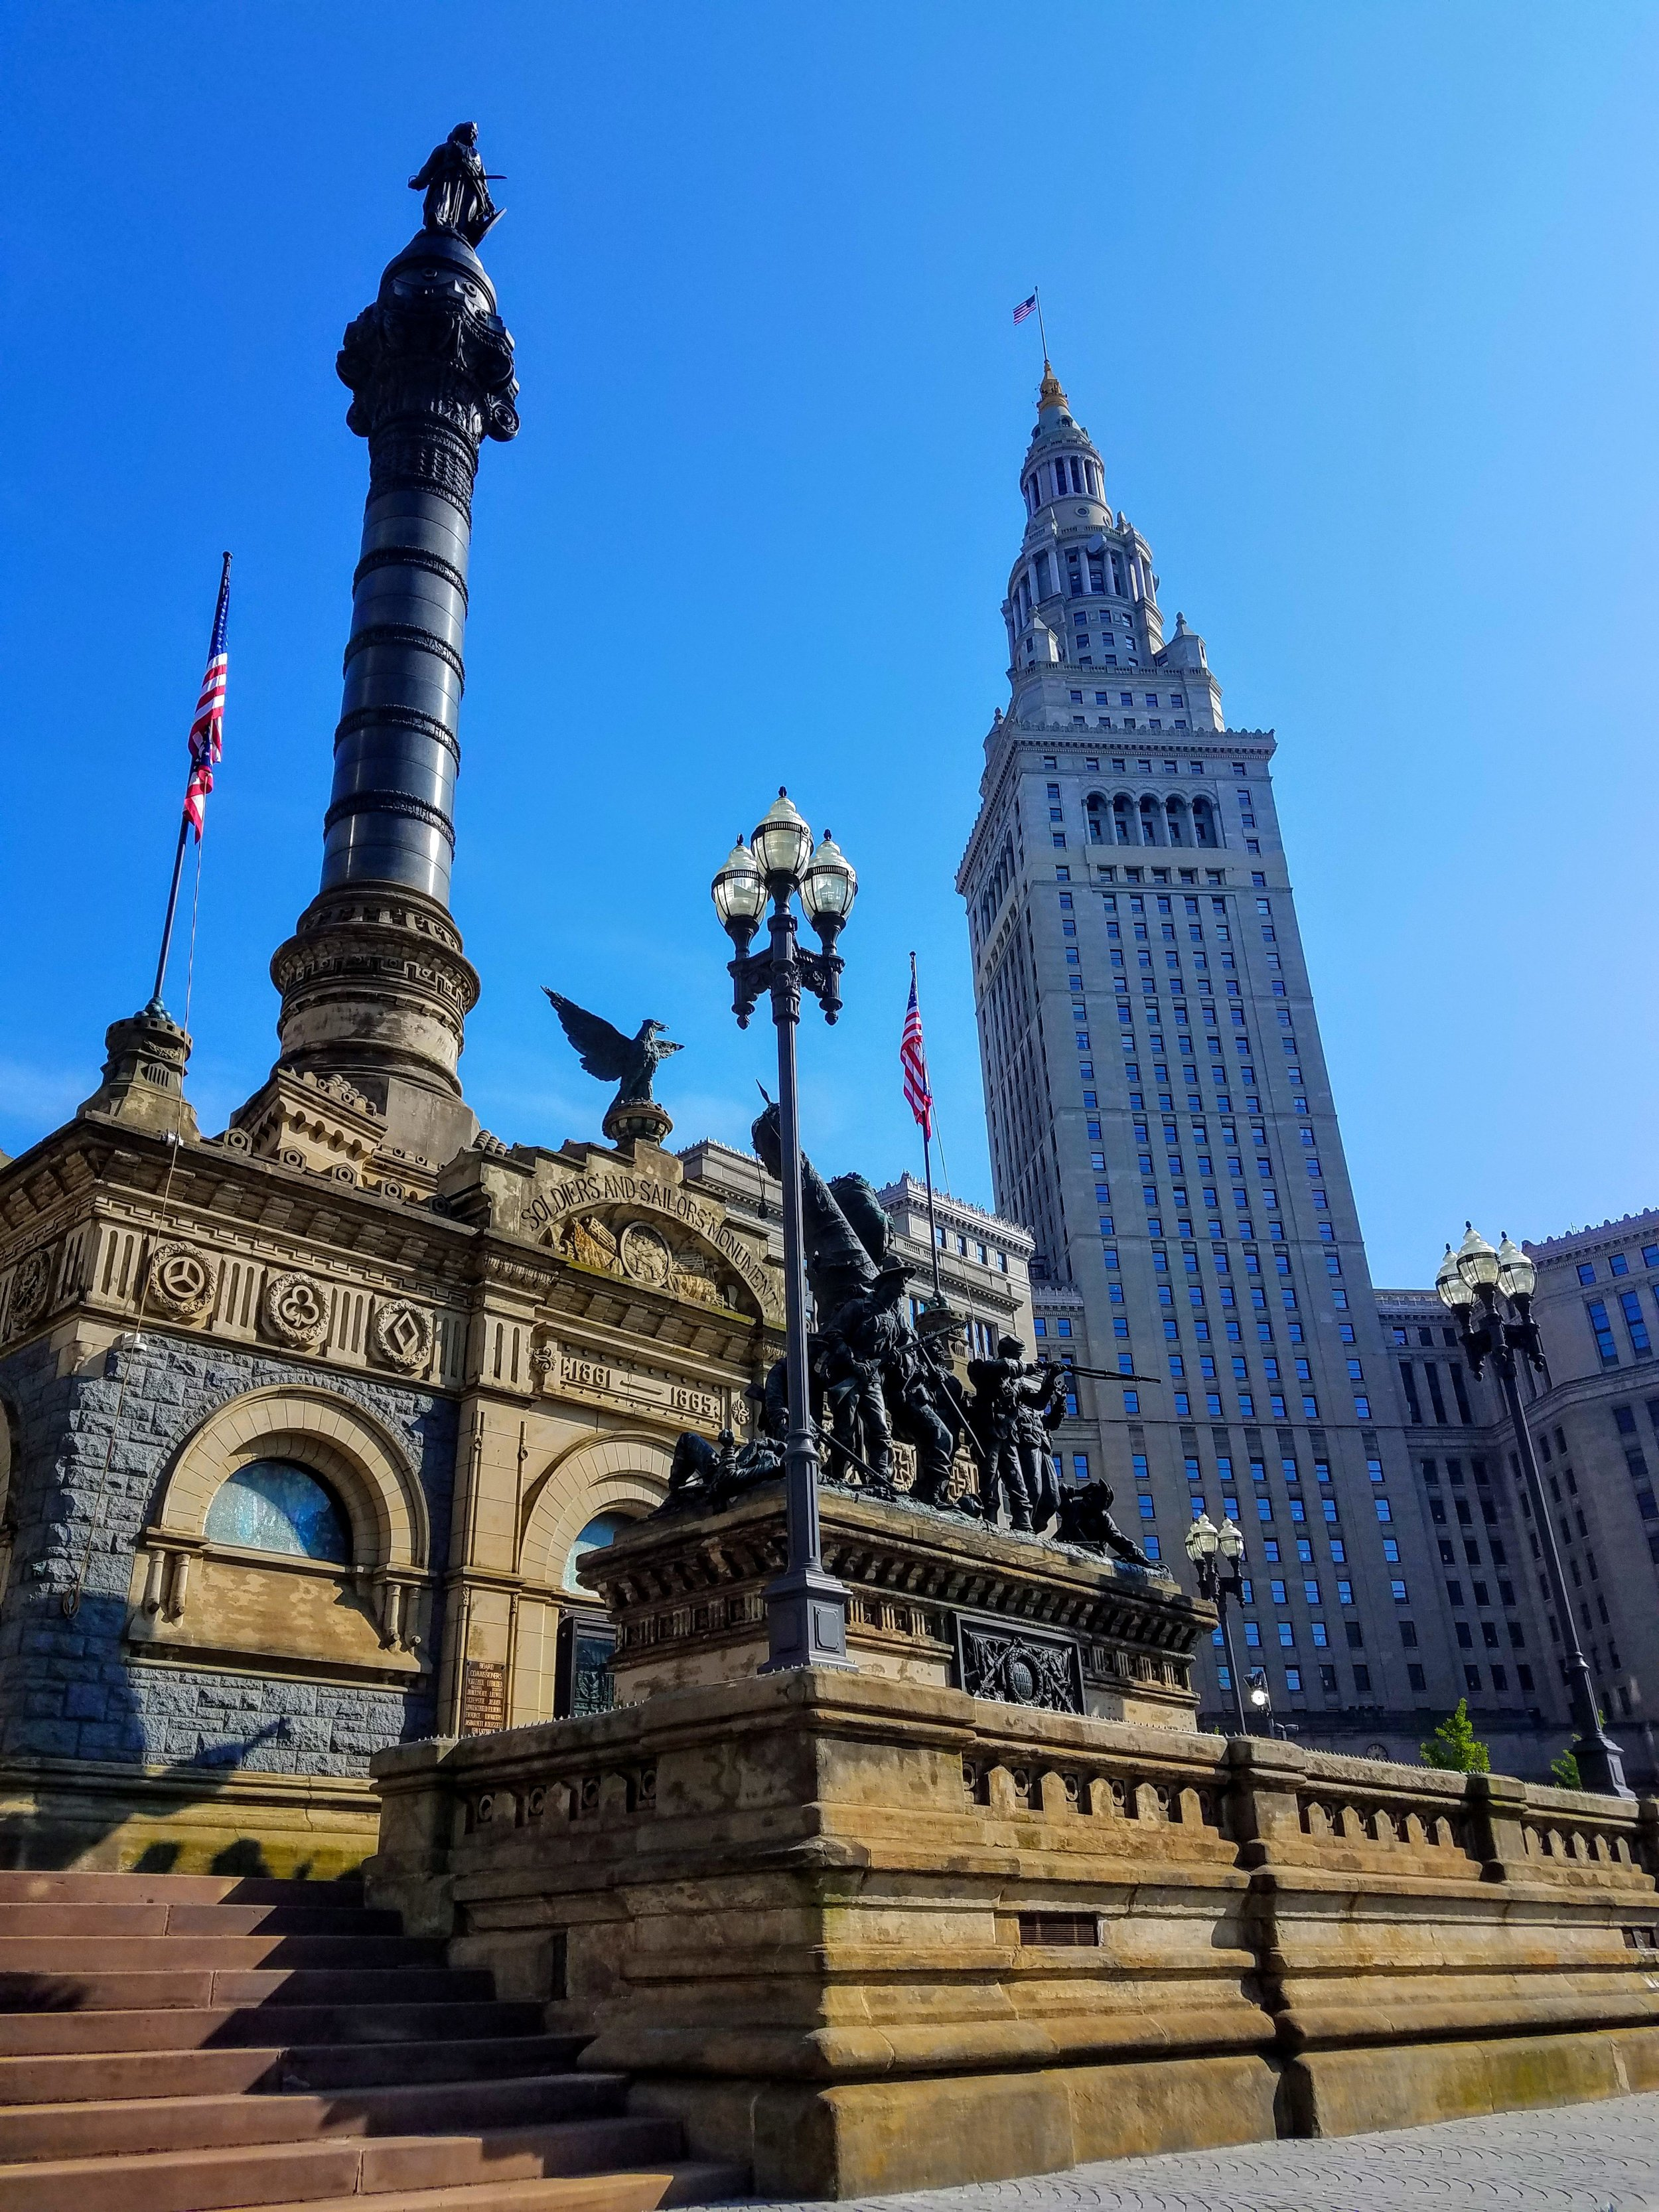 The Sailors and Soldiers Monument is absolutely amazing. Each of the four edges depict battle scenes from the Navy, Artillery, Infantry and Cavalry. The column is topped with a statue of the Goddess of Freedom, defended by the Shield of Liberty. Built in 1894